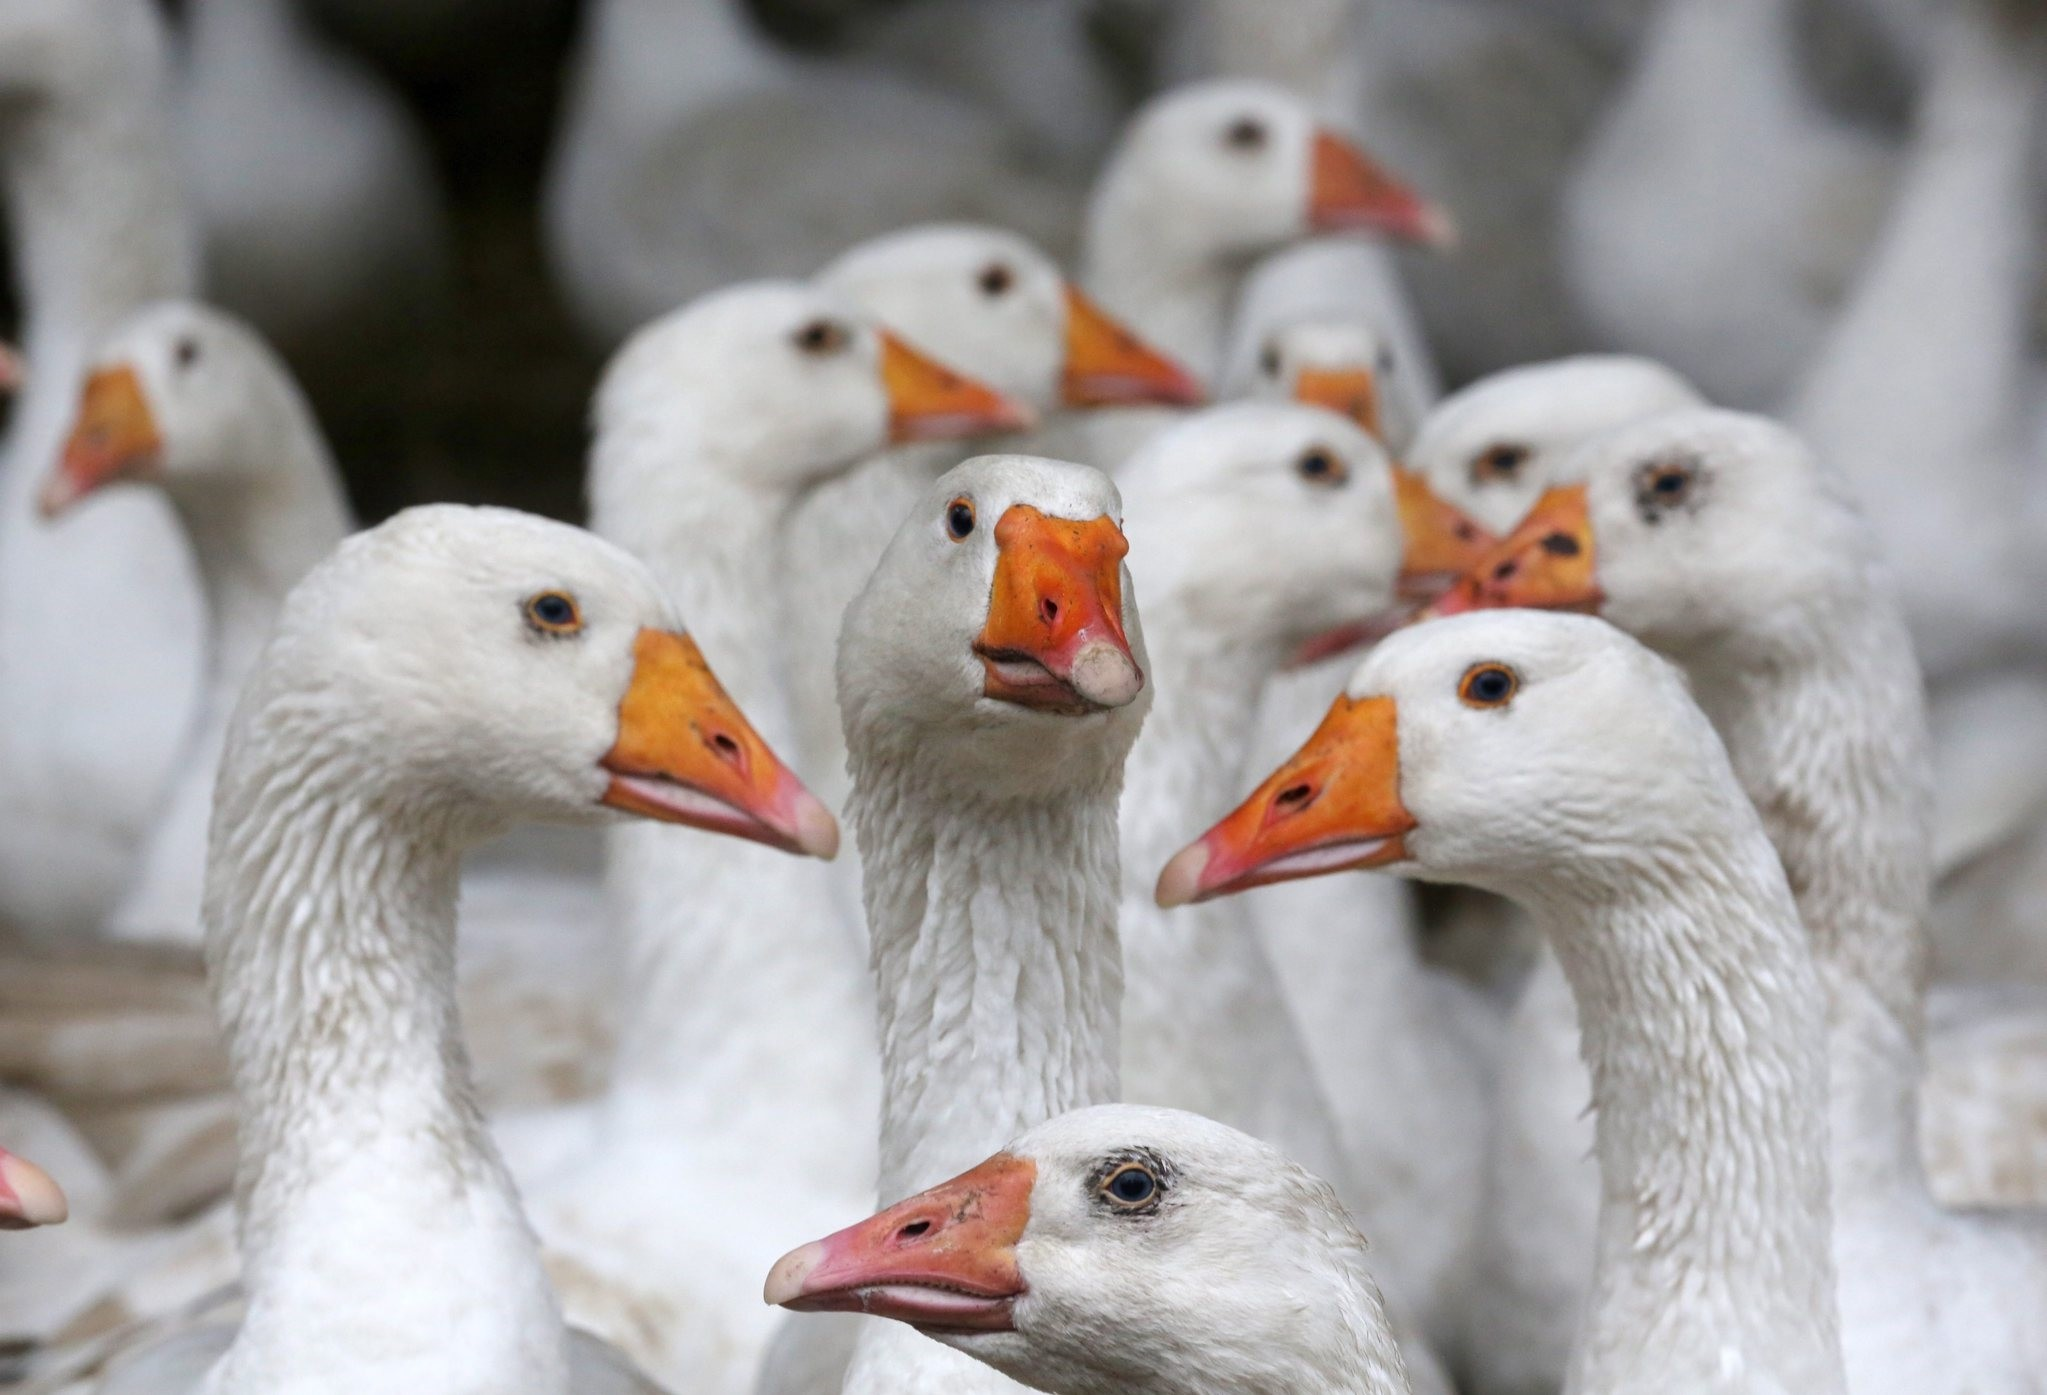 Geese are kept in stalls after farmers were ordered to keep the animals inside in the wake of an outbreak of avian flu in North Rhine-Westphalia. (EPA Photo)